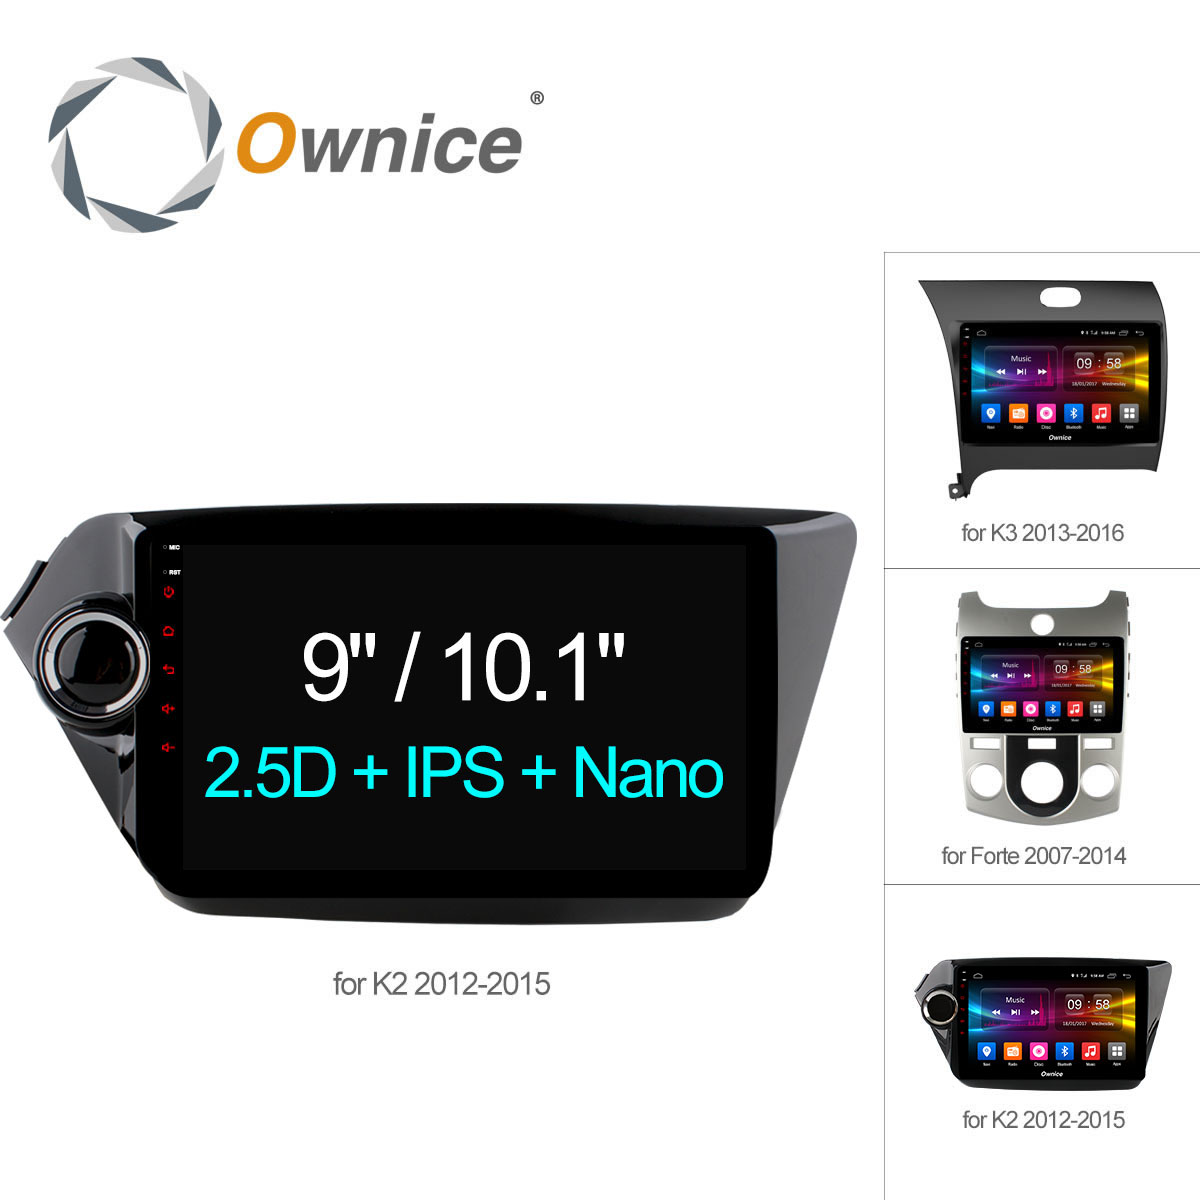 Ownice C500+ Android 6.0 Octa 8 Core car radio player GPS navi DVD for Kia k2 K3 Forte 2012 2G RAM 32G ROM Support 4G LTE DAB+